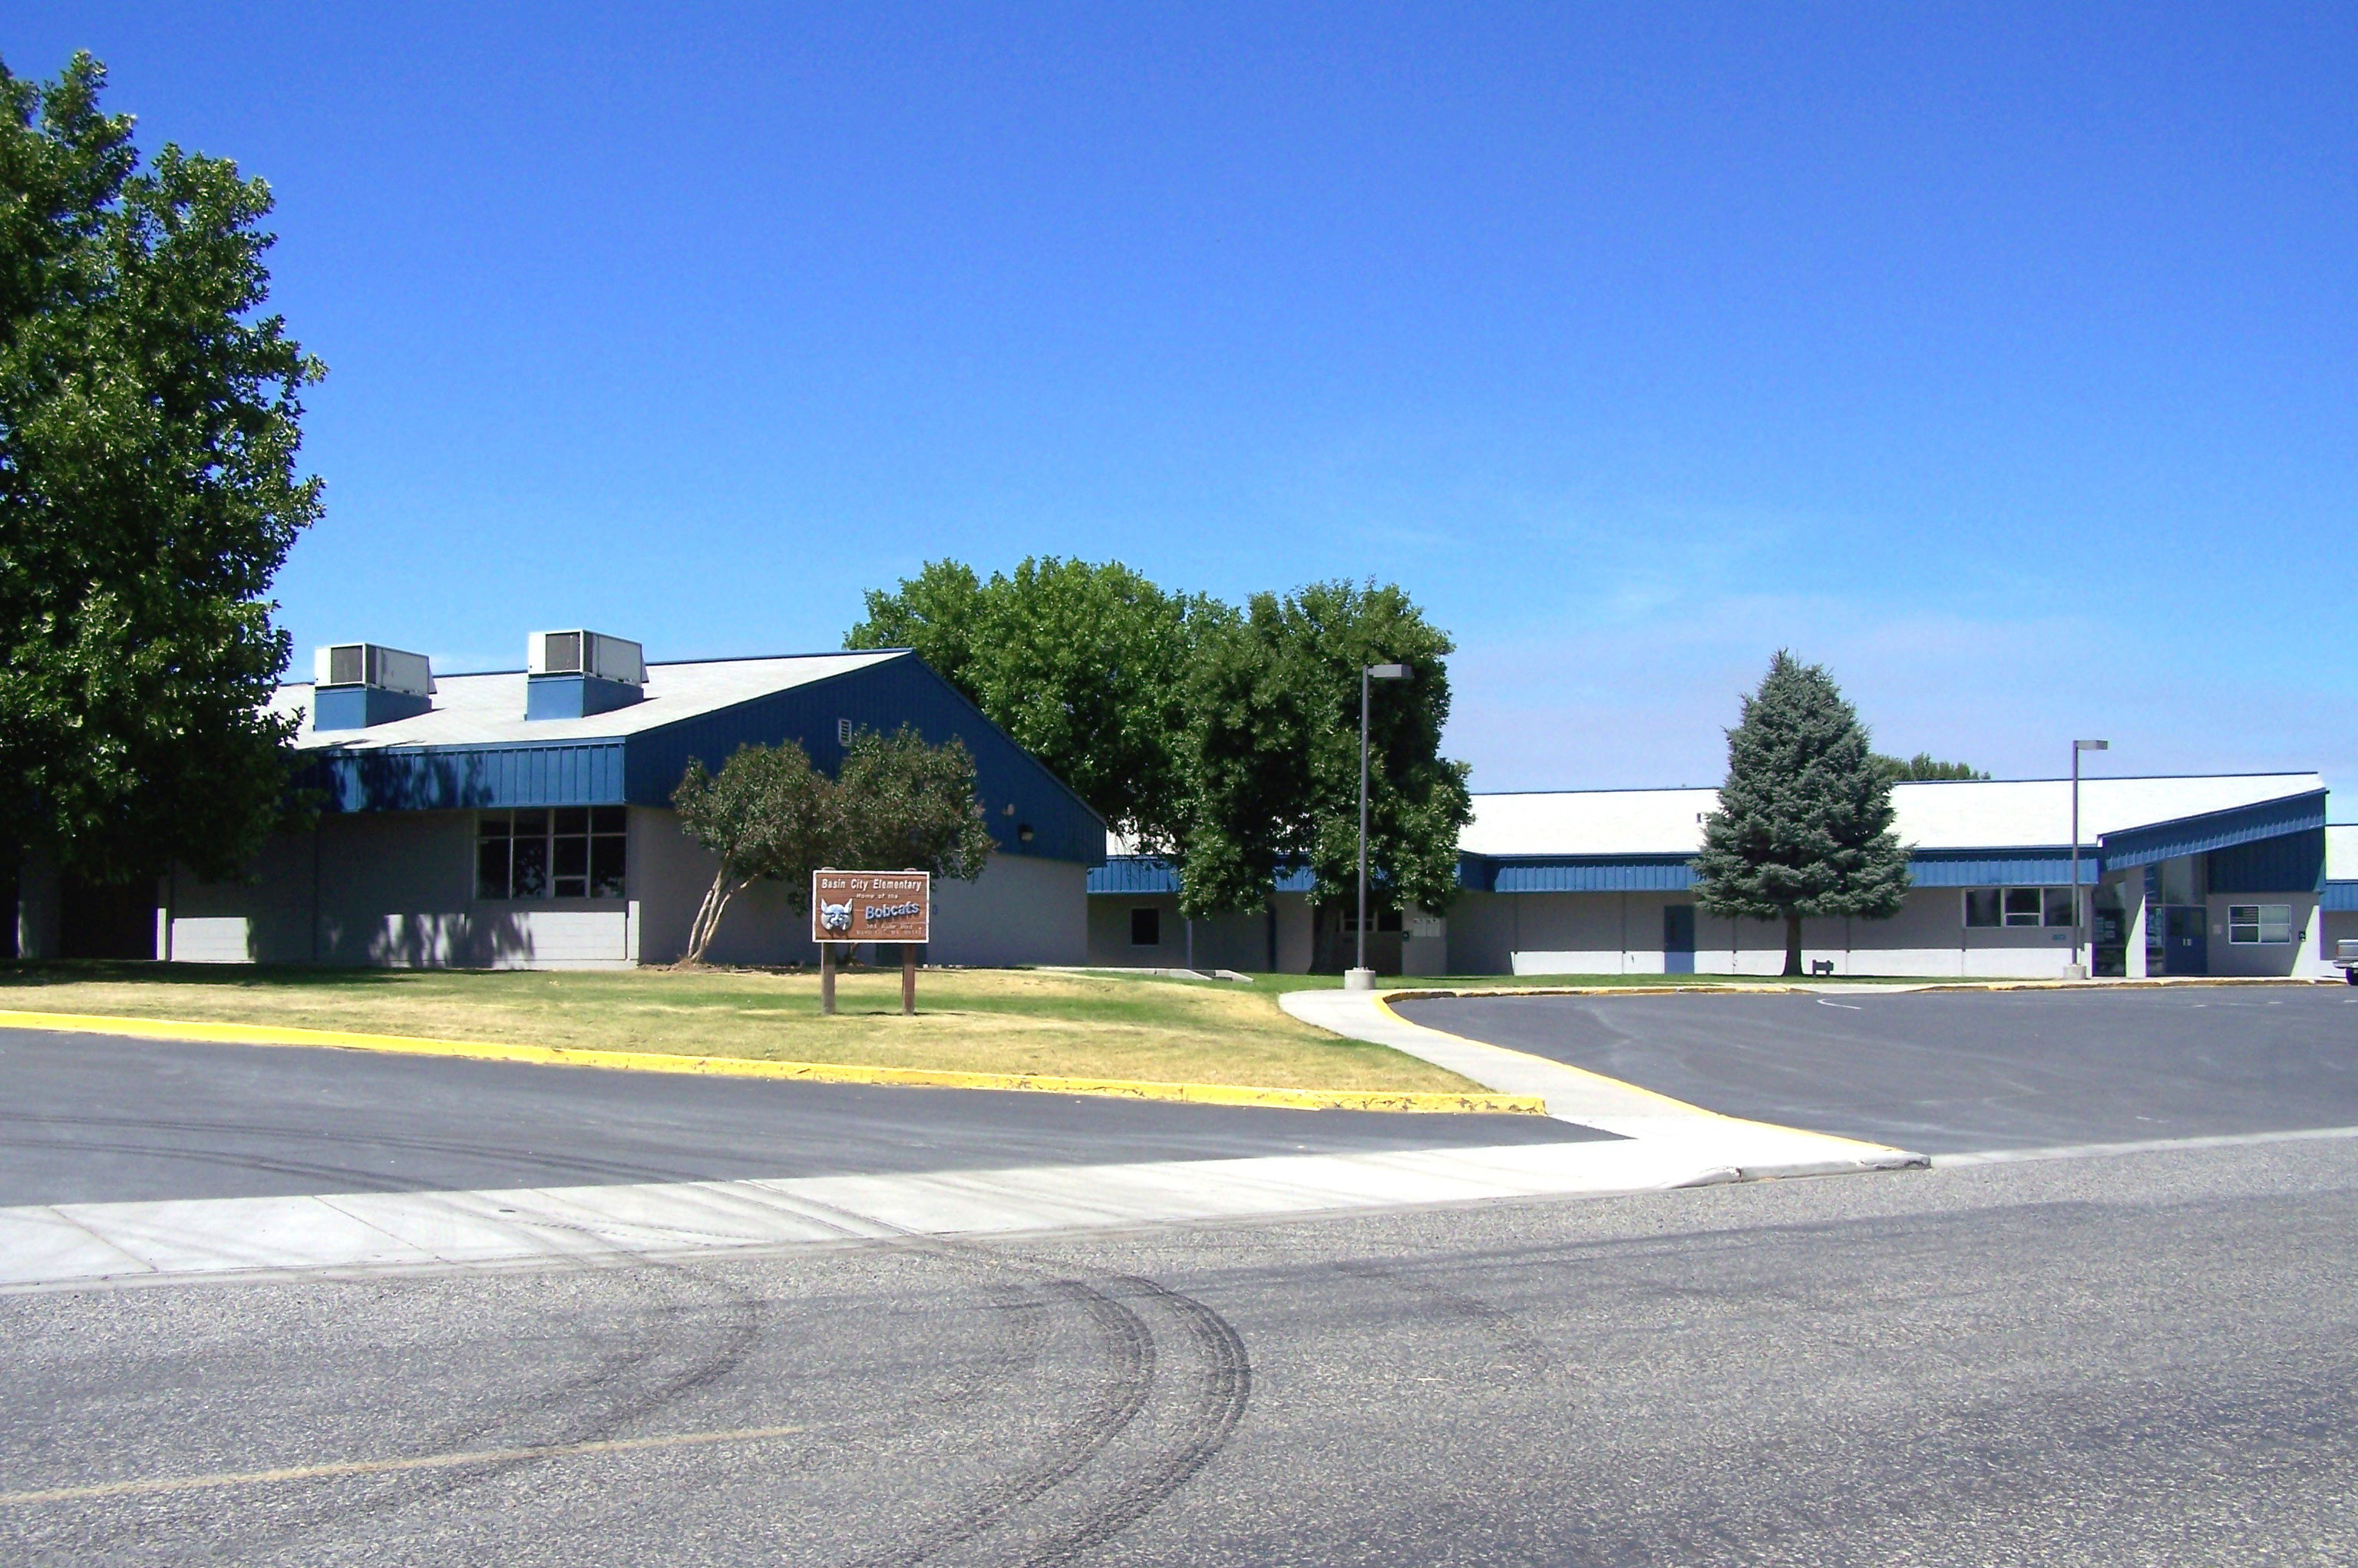 A Photo of the Basin City Elementary Building